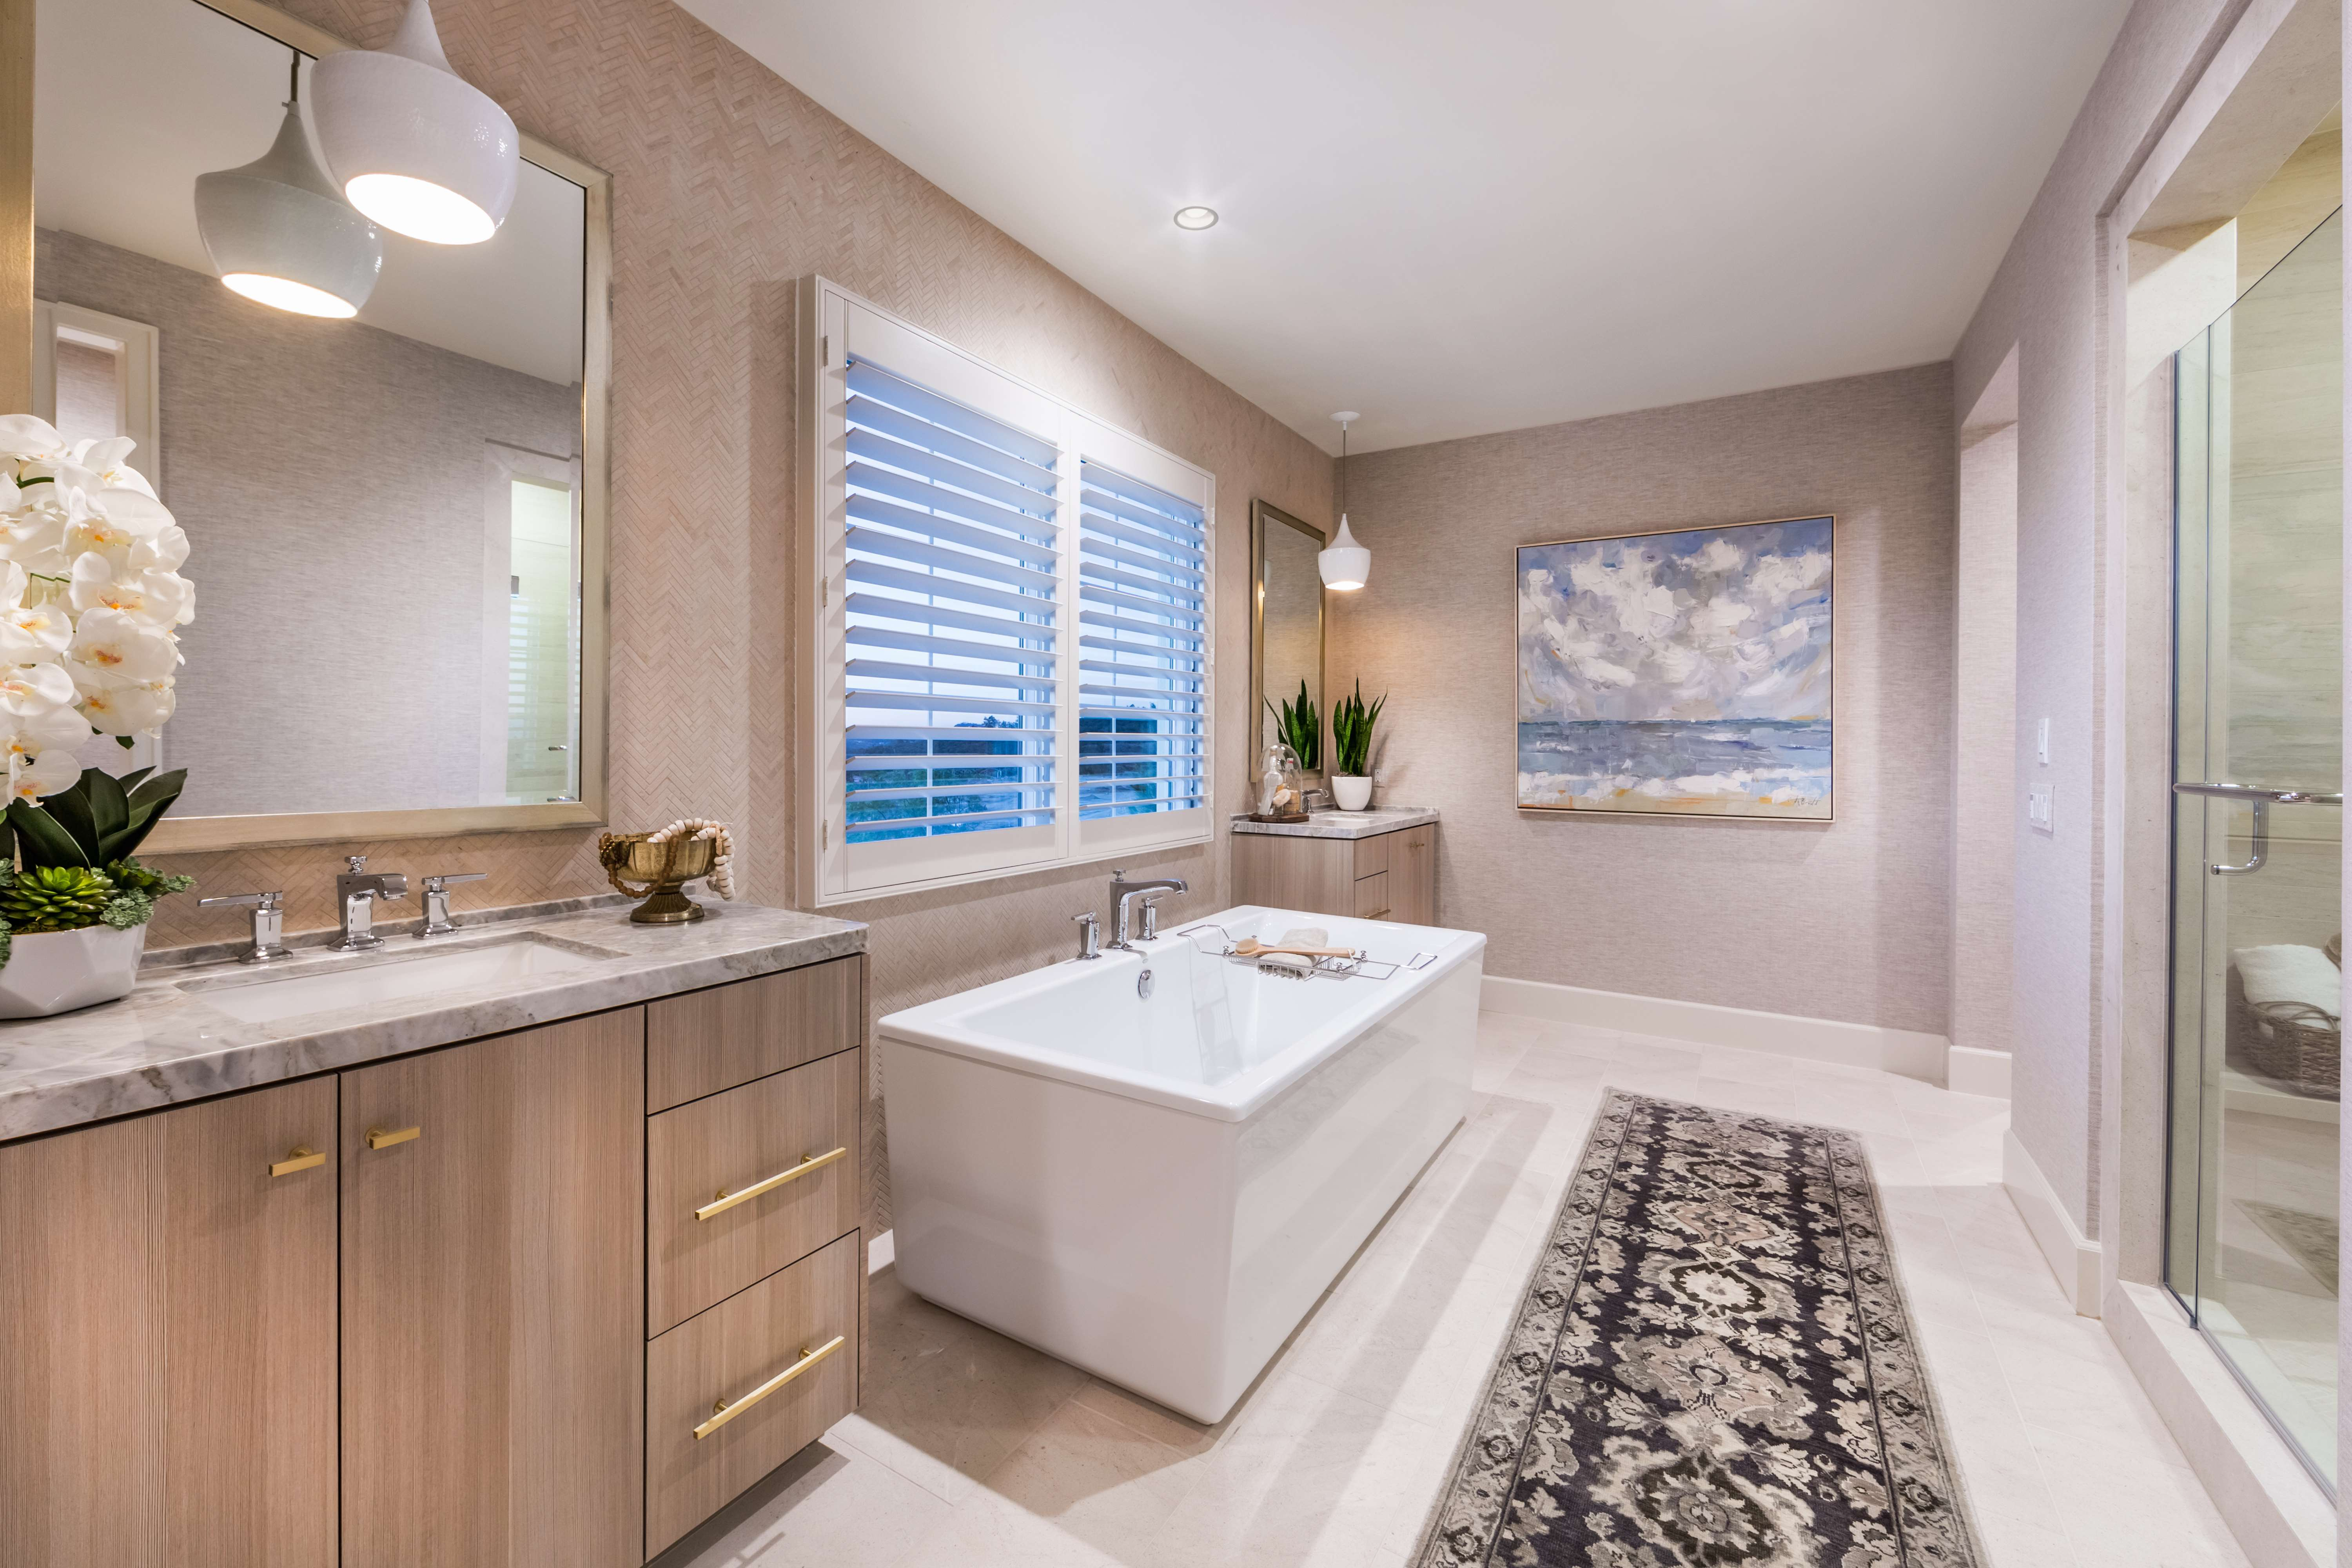 Master Bathroom at Terra Residence 1 in Irvine